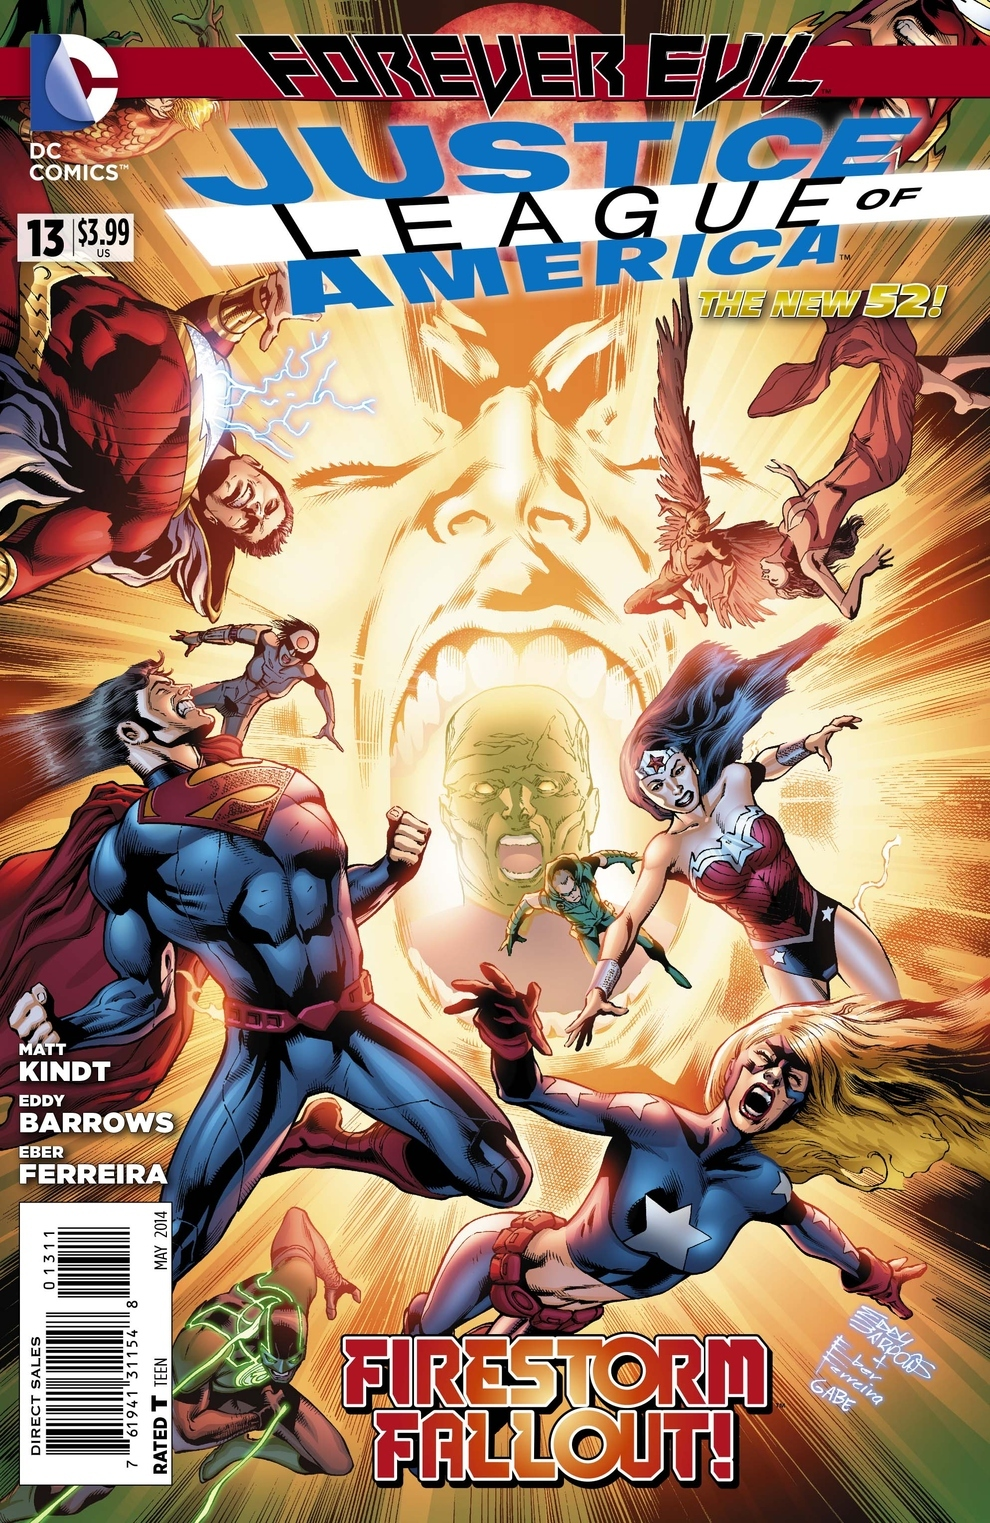 Preview Justice League of America #13